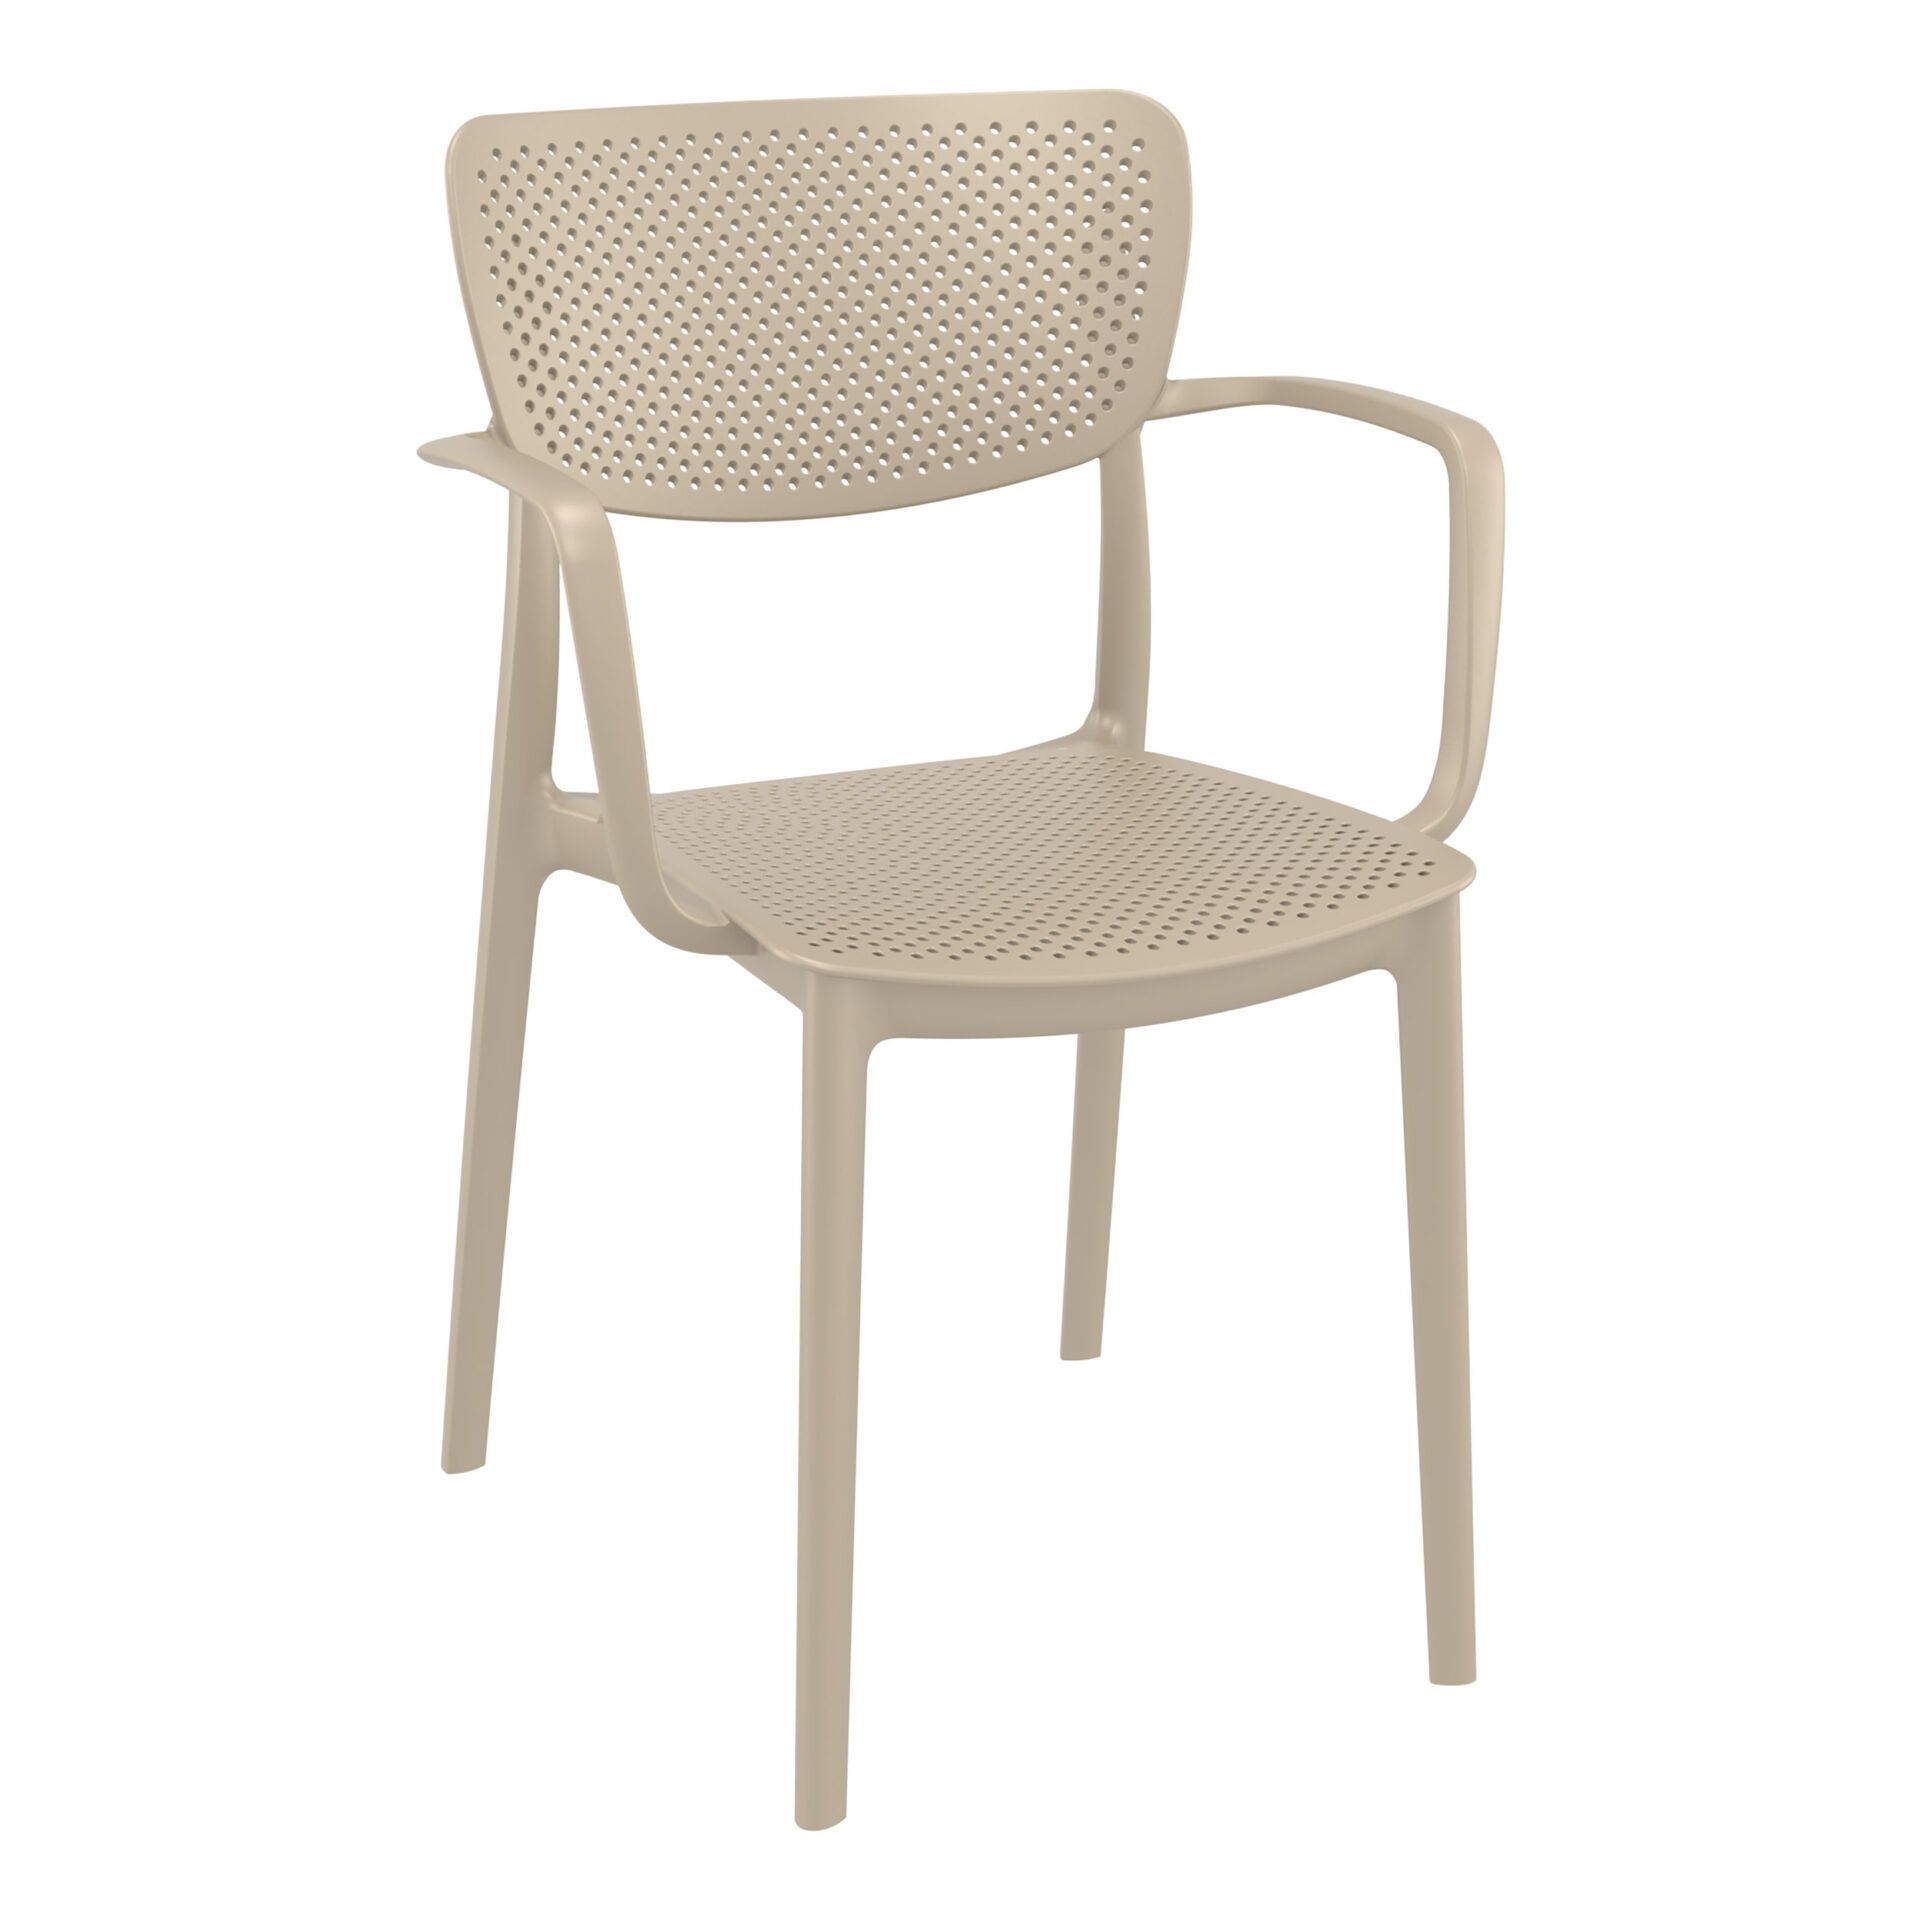 polypropylene hospitality seating loft armchair taupe front side